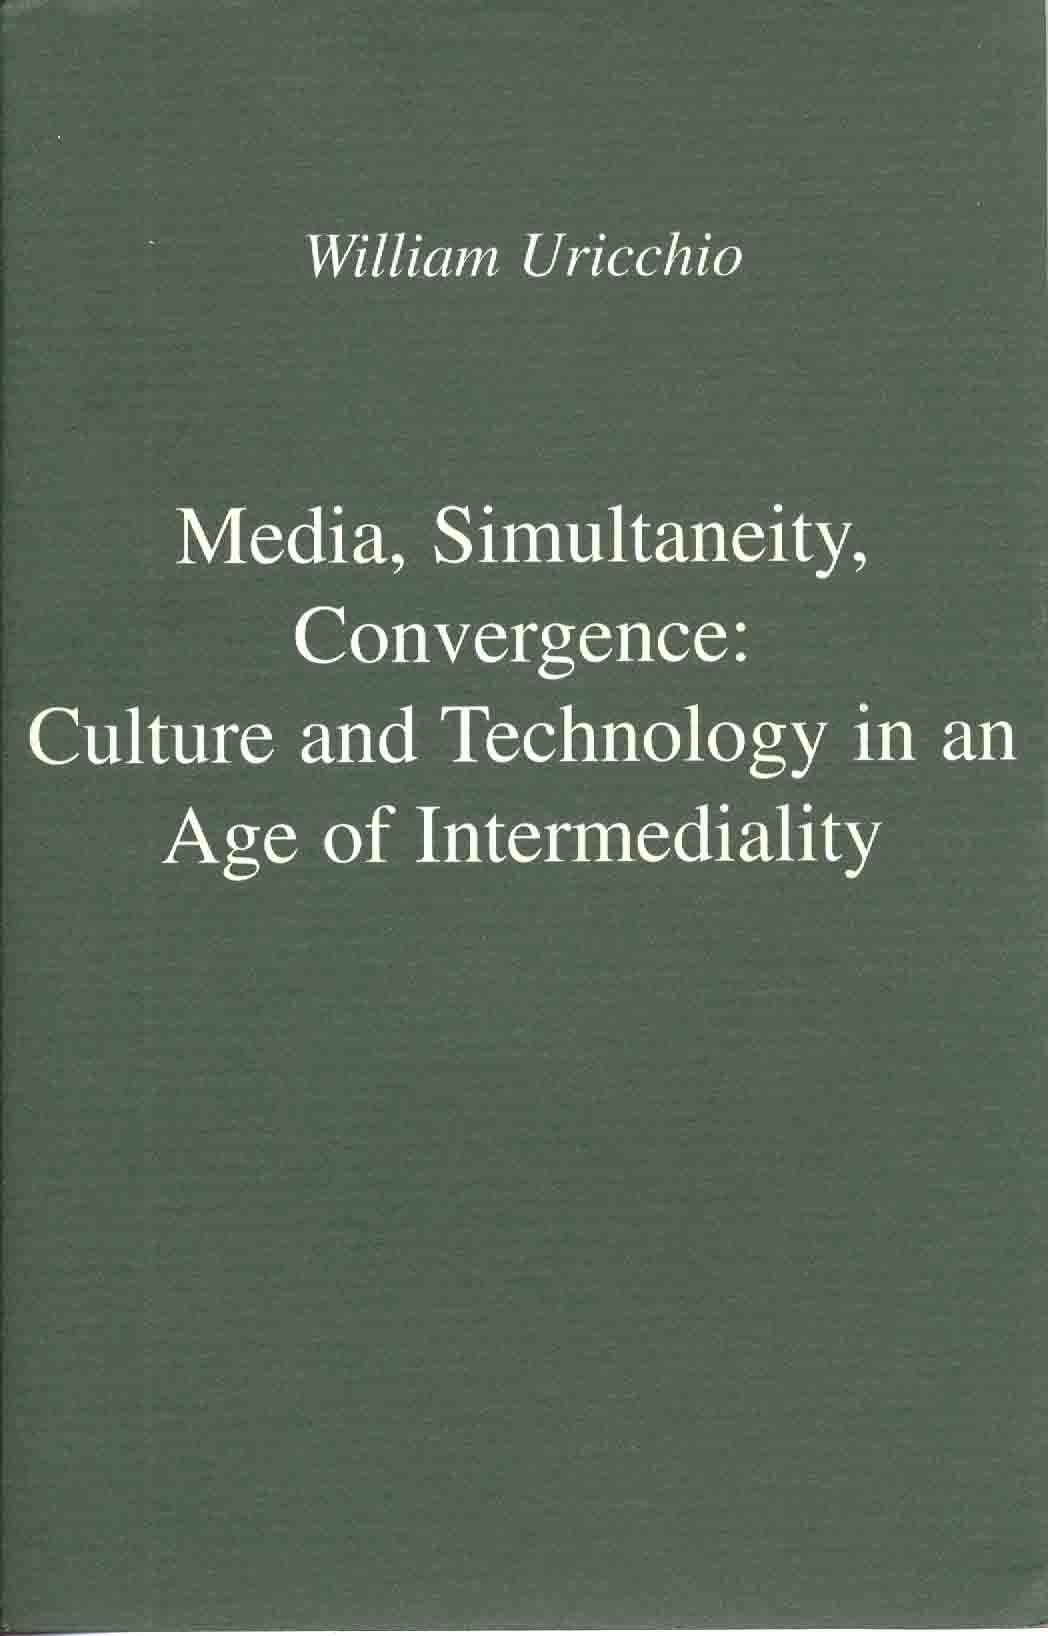 Media Simultaneity Convergence 200 dpi low quality